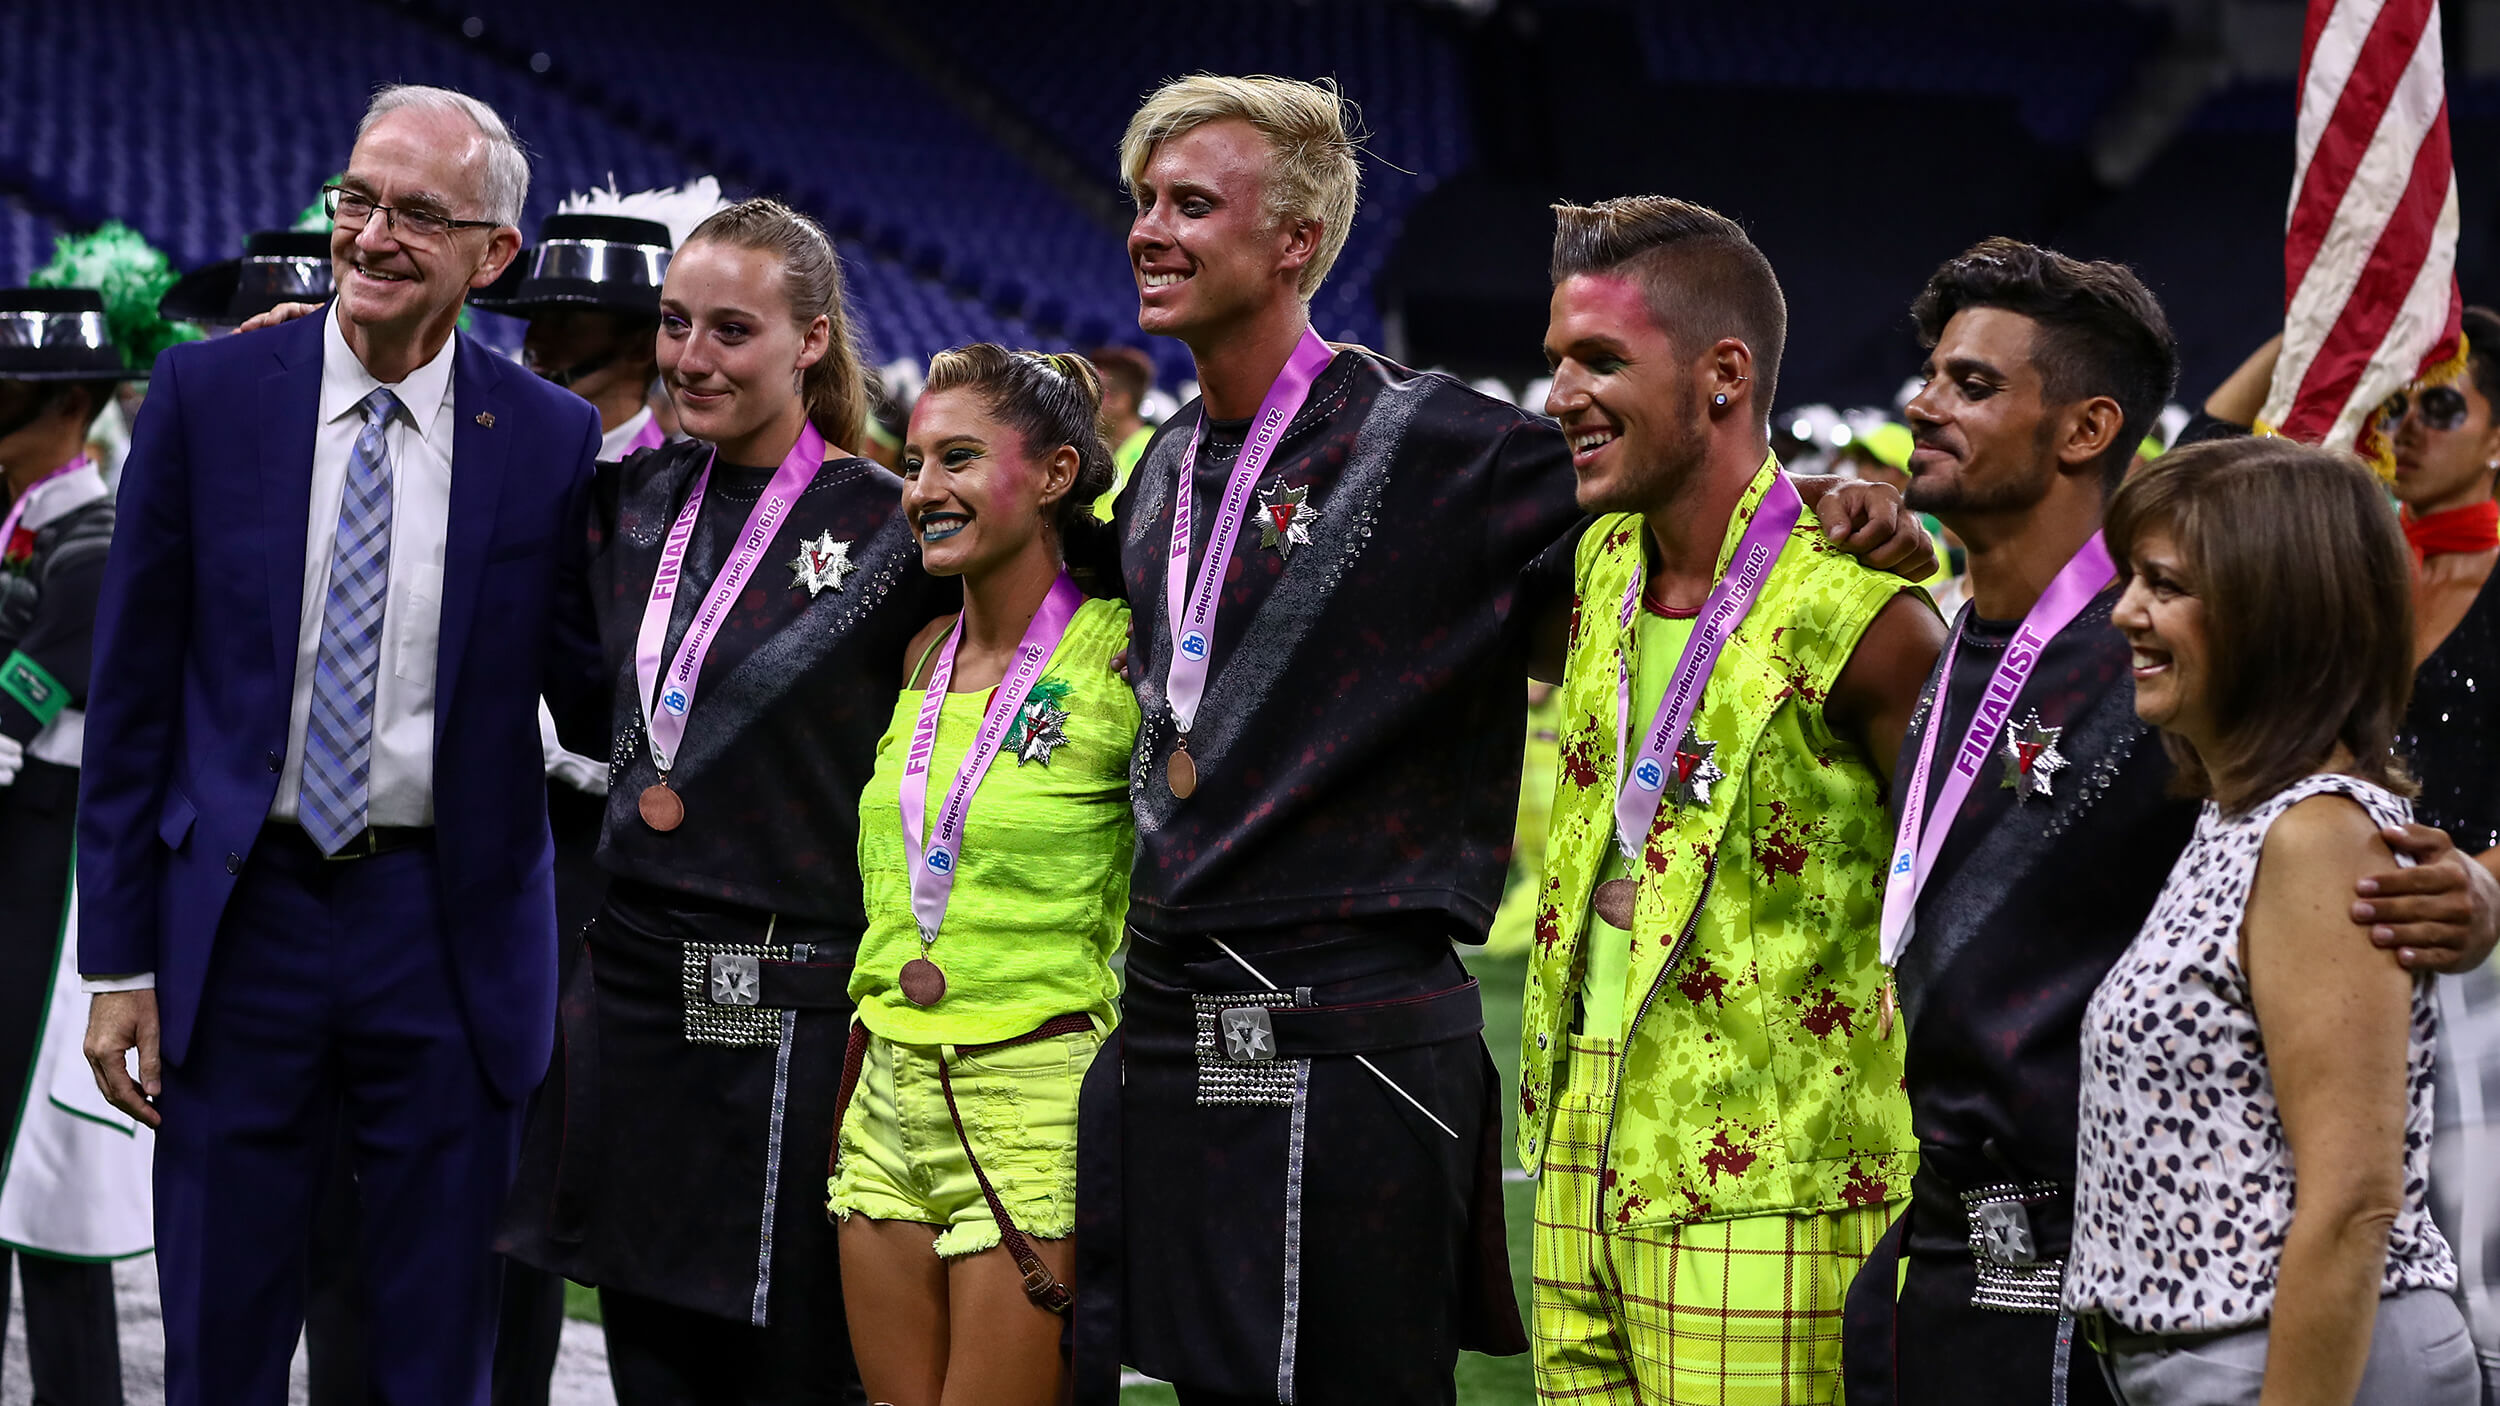 2019 Vanguard breaks tie for most bronze-medal finishes